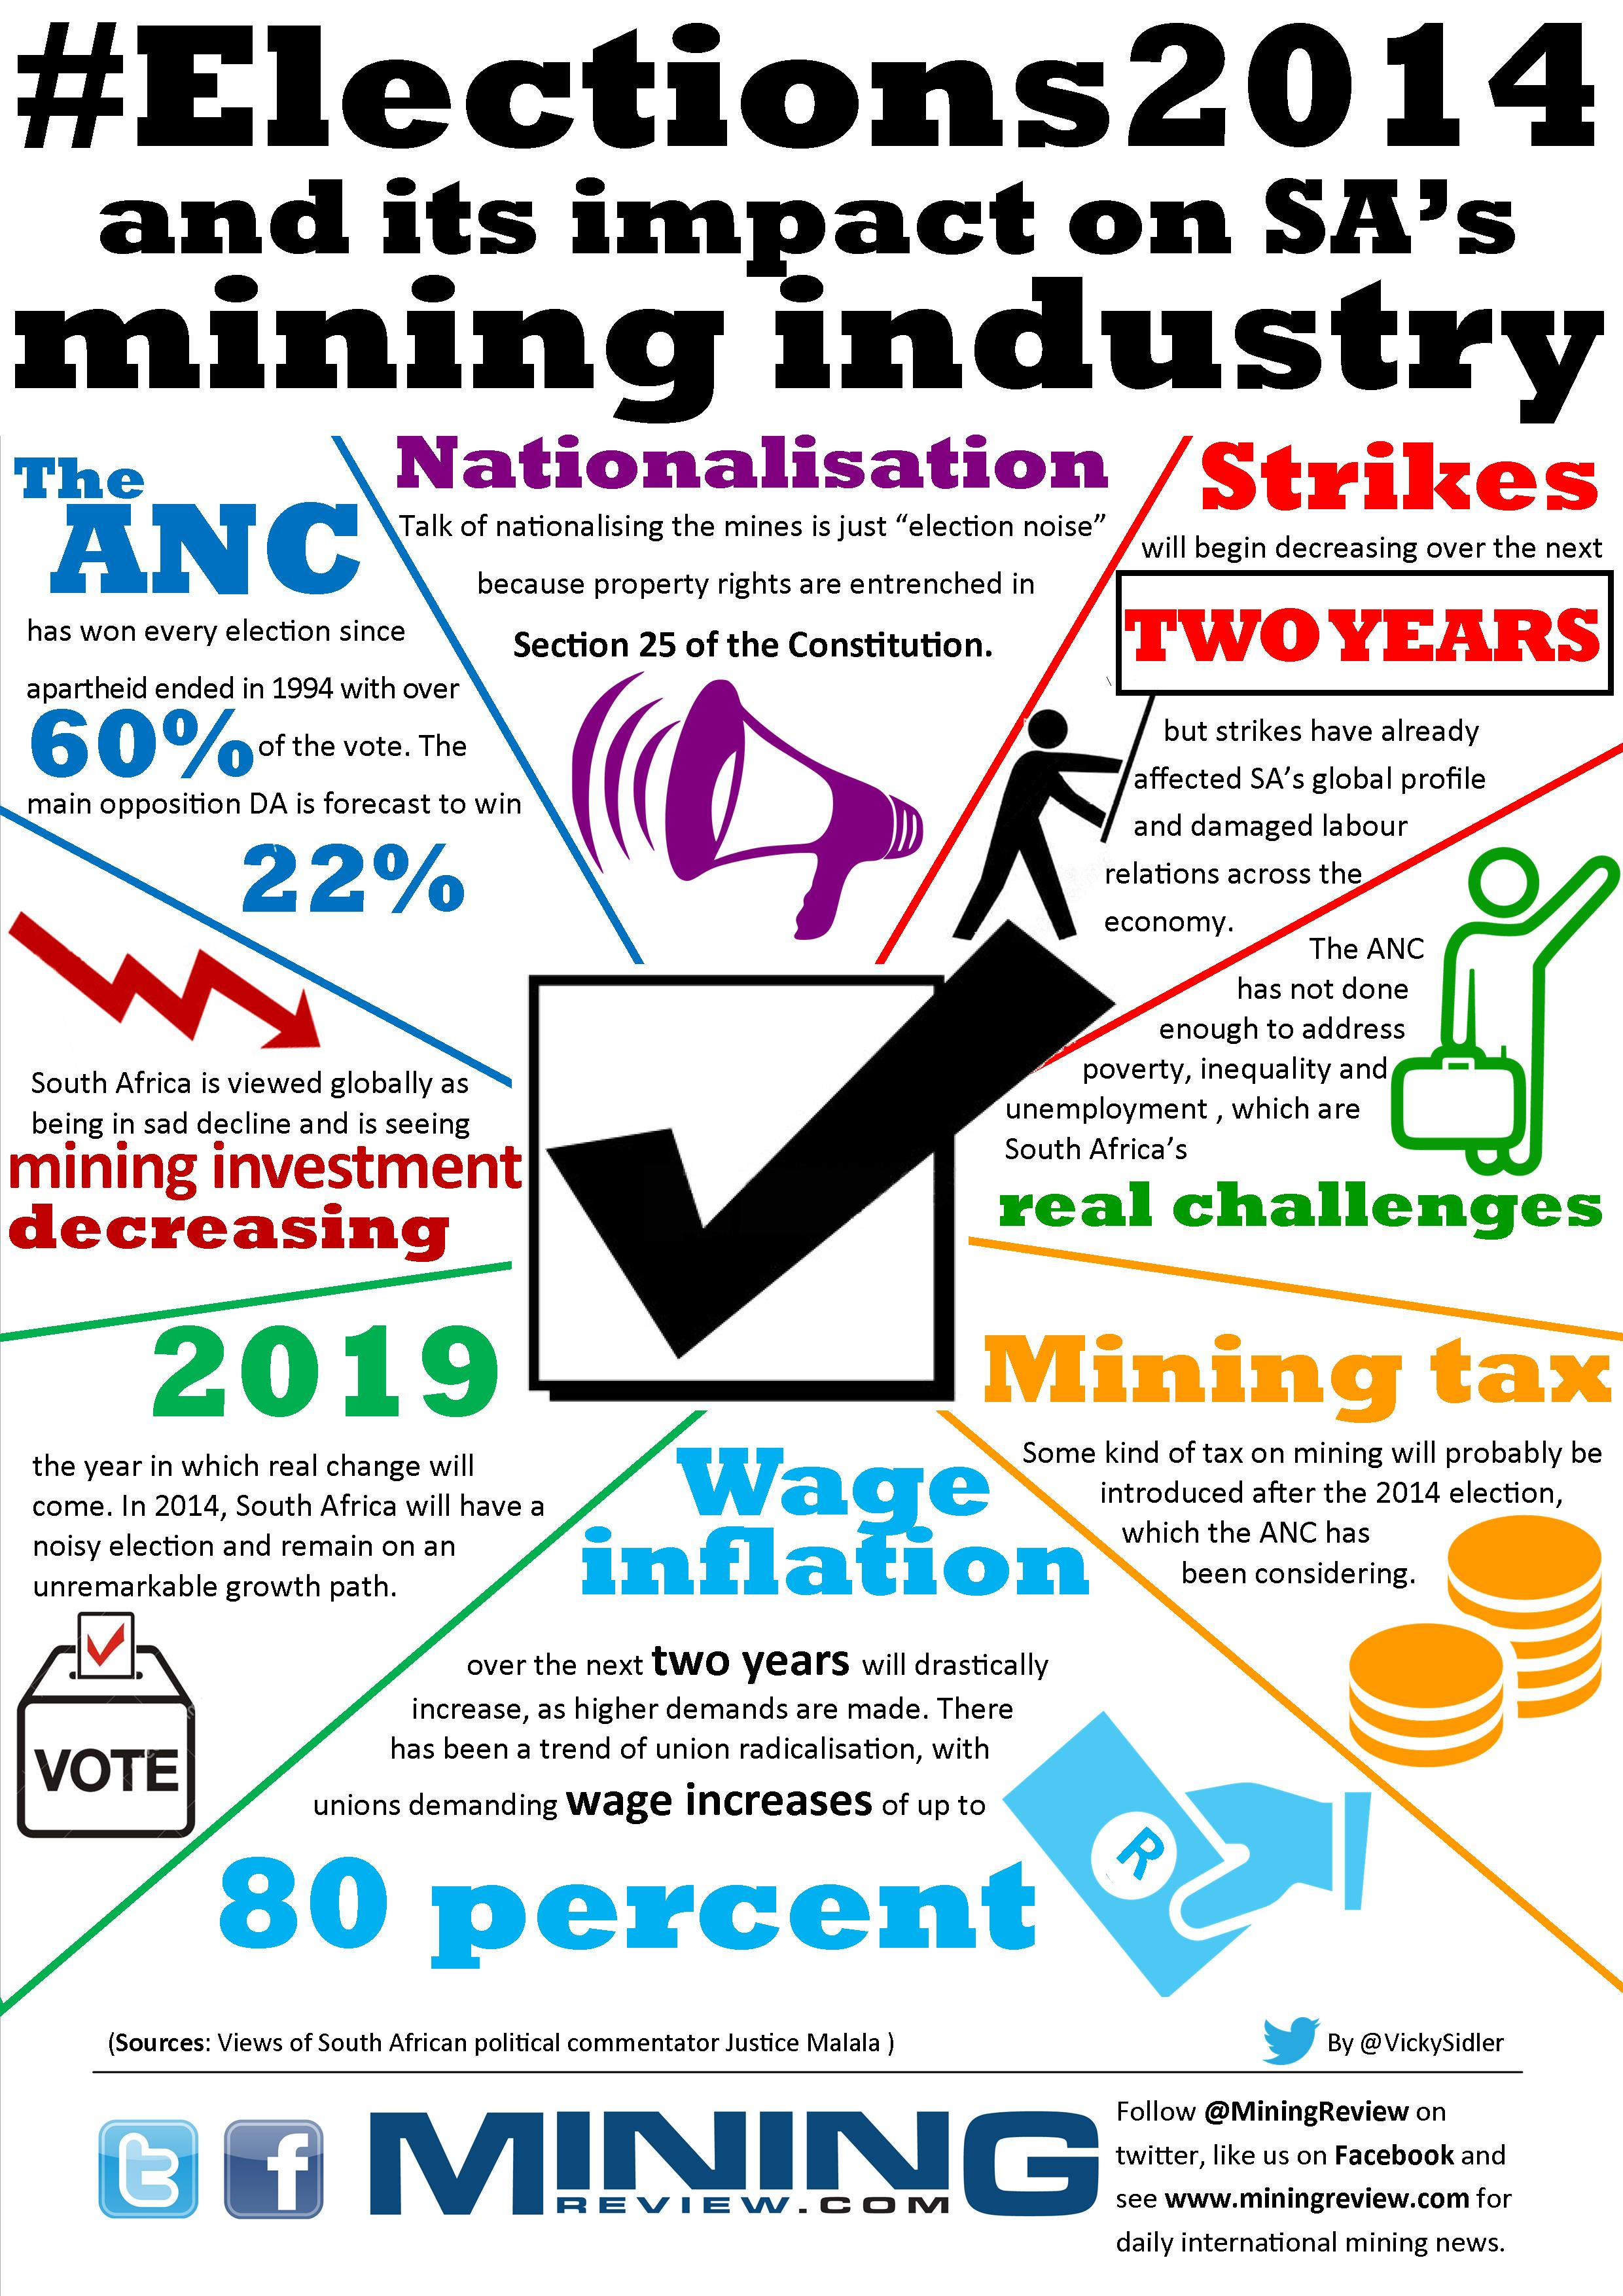 2014 elections and impact on SA mining industry infographic